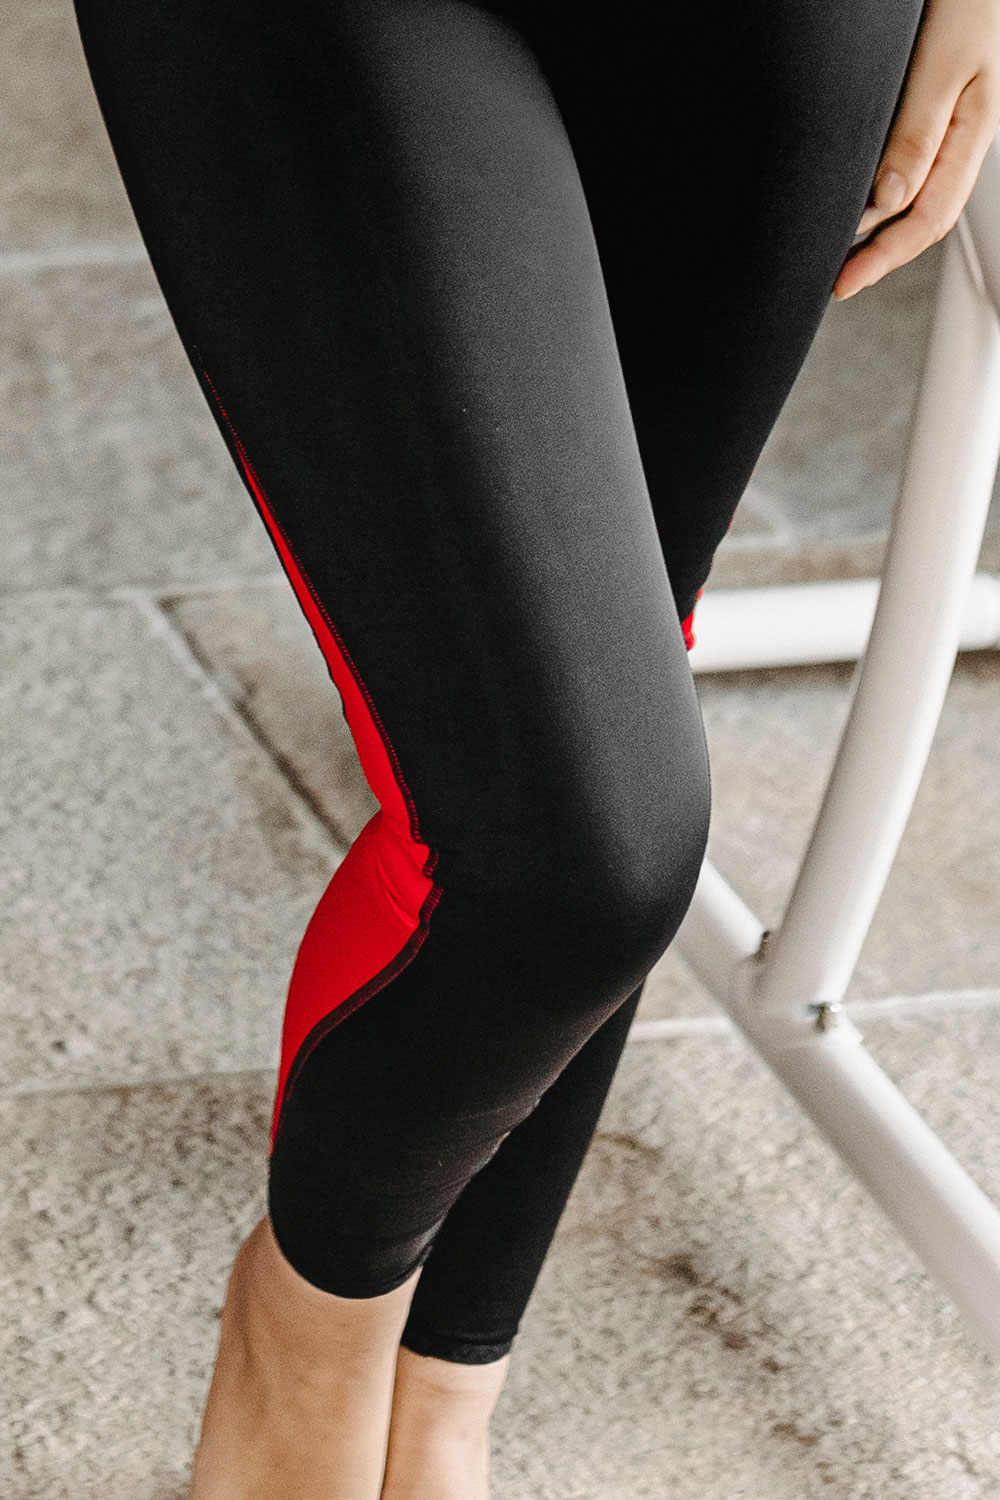 Ladynov_Leggings_Draco_01b